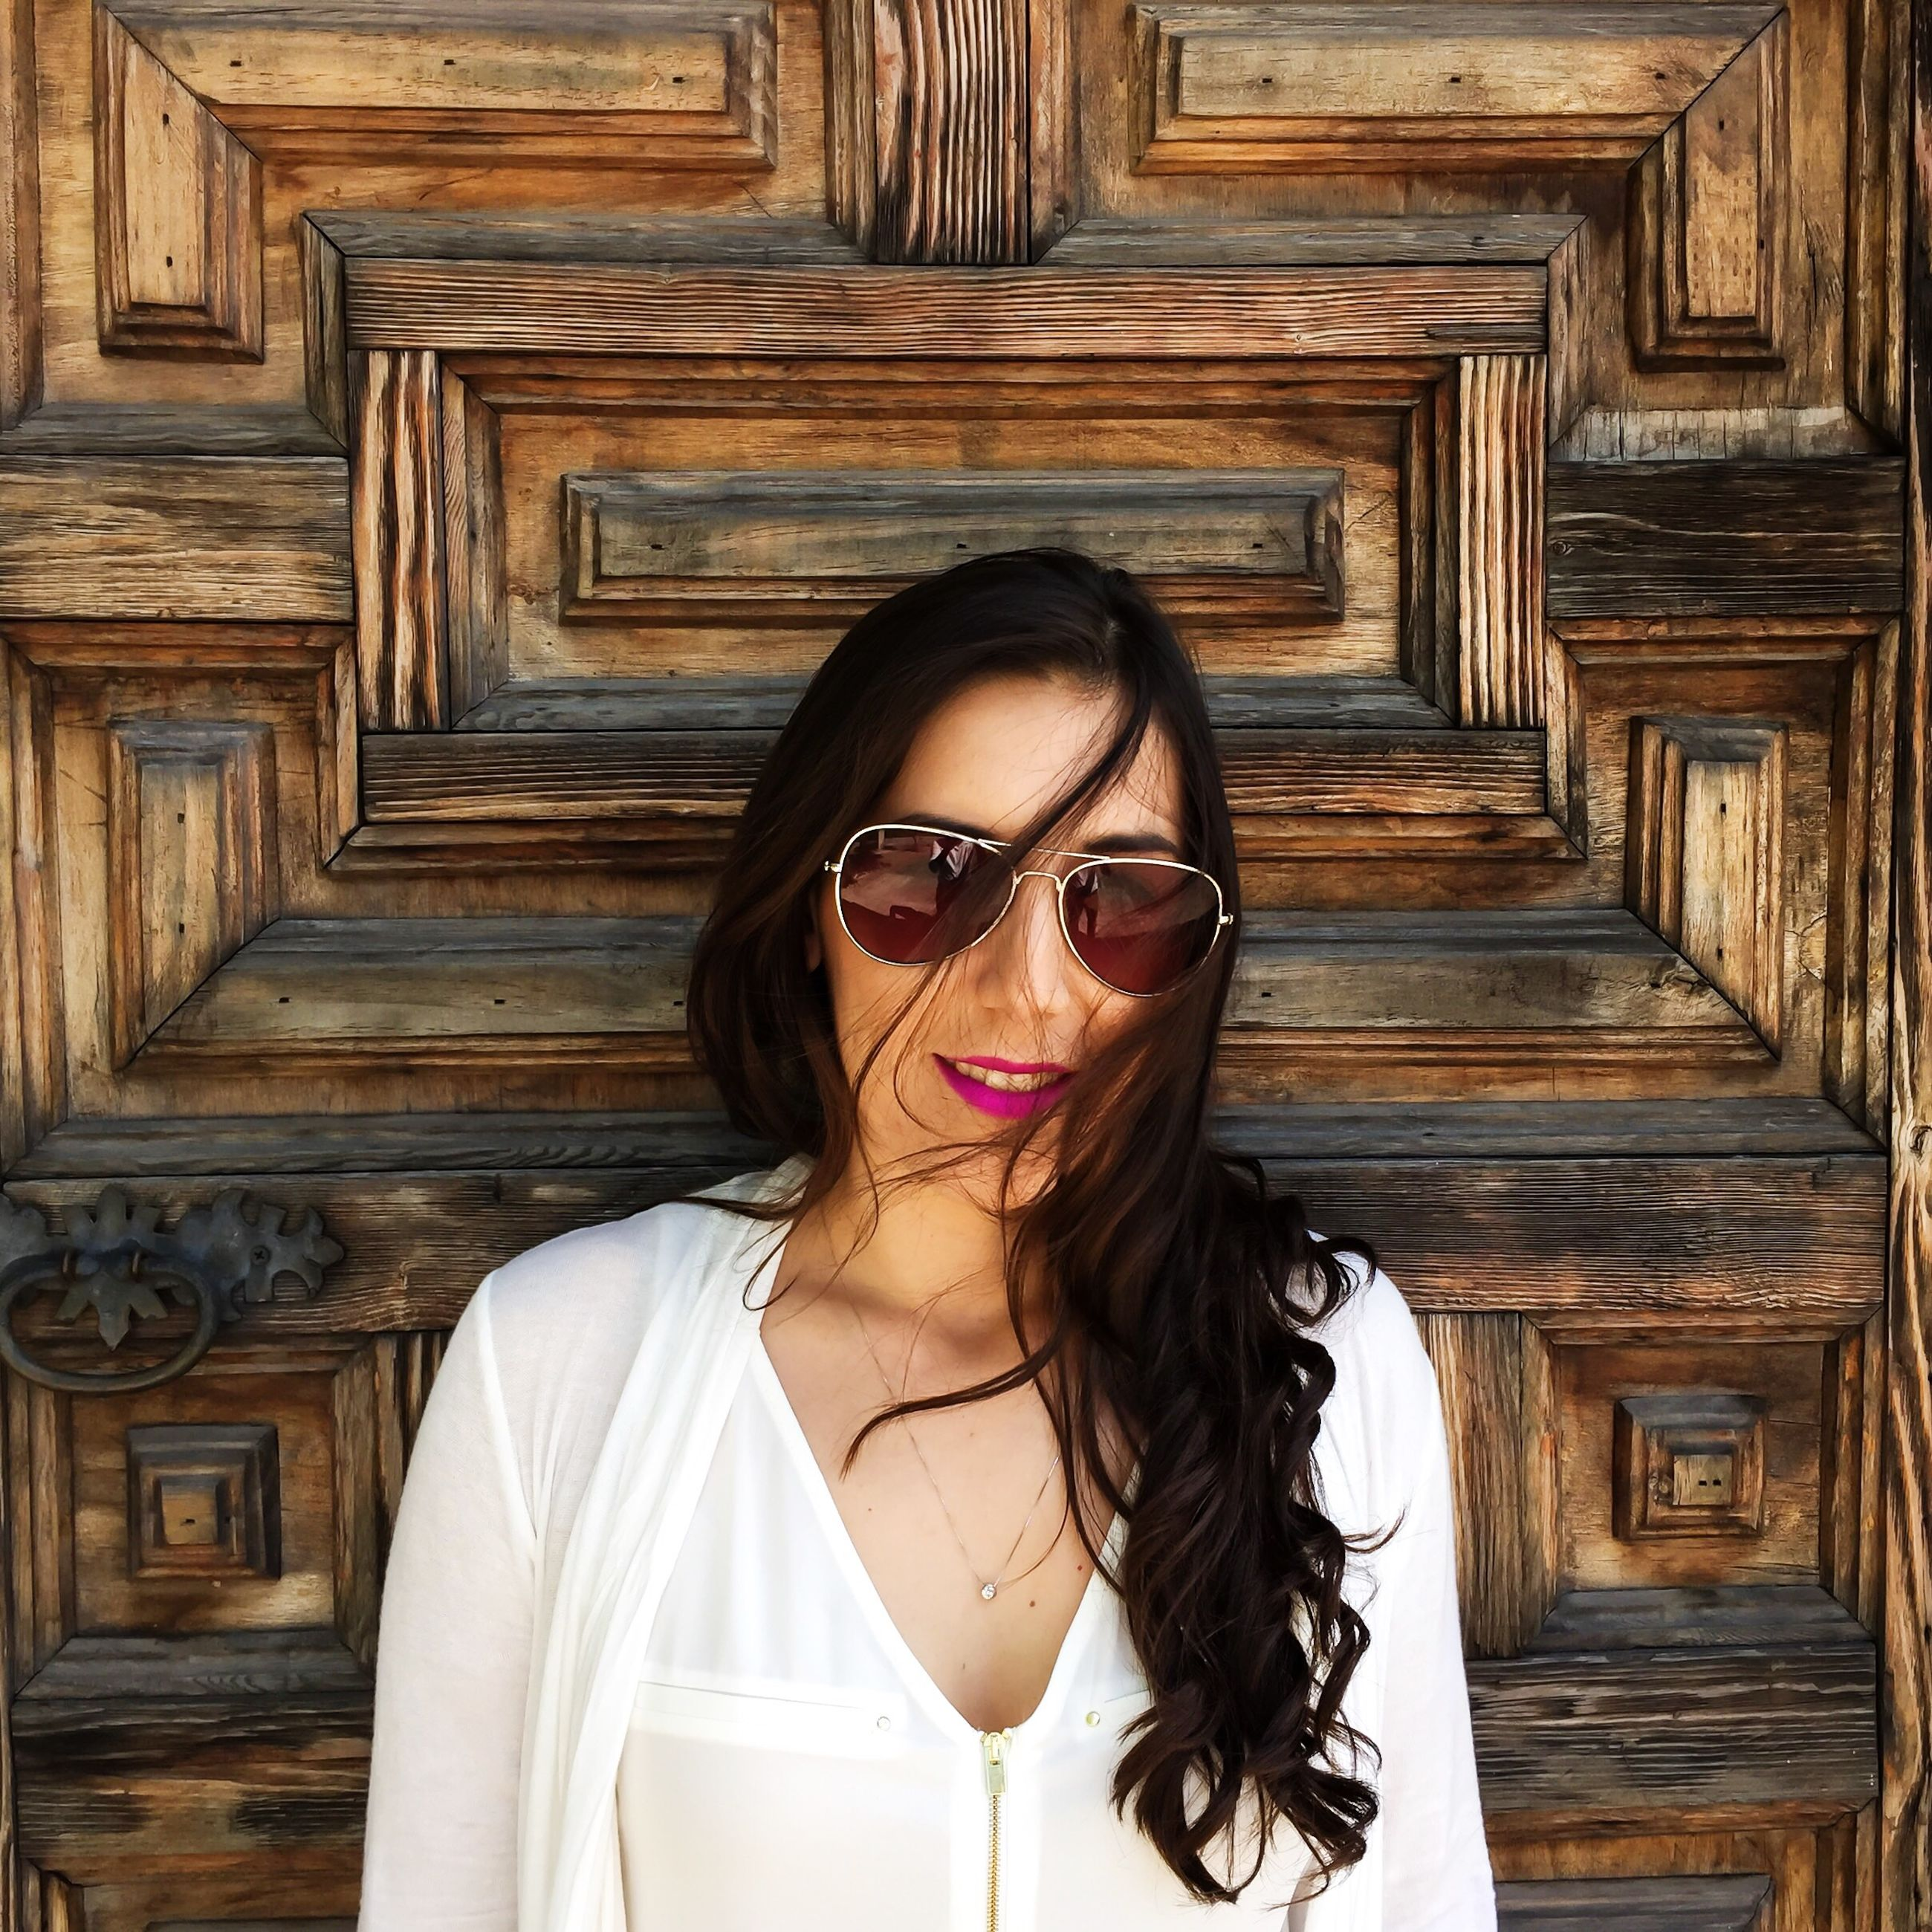 young adult, looking at camera, portrait, young women, front view, person, lifestyles, sunglasses, smiling, casual clothing, indoors, leisure activity, long hair, wood - material, standing, beauty, headshot